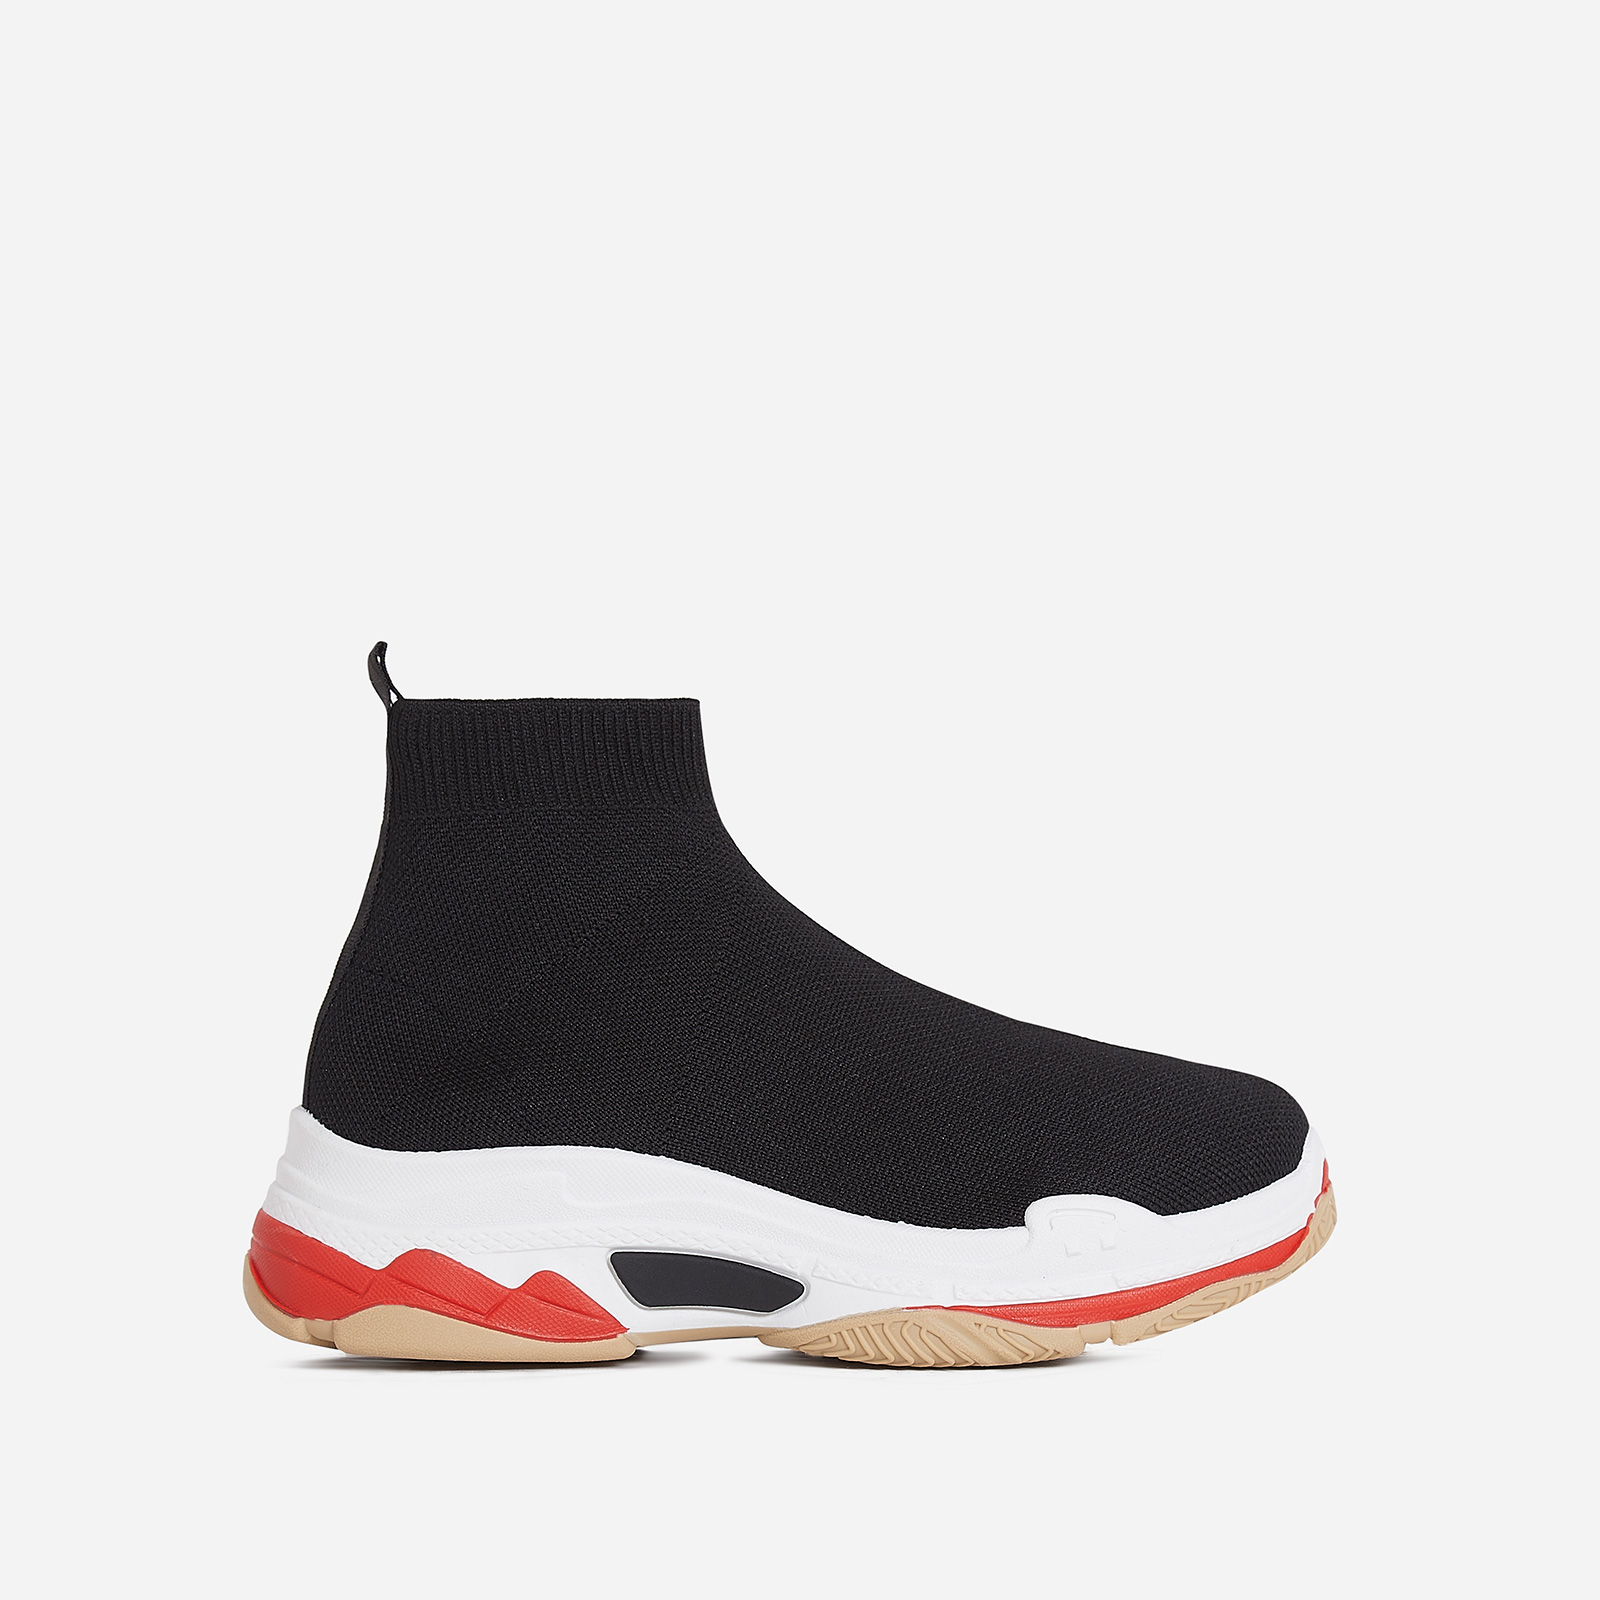 Tidal Chunky Sole Trainer In Black Knit